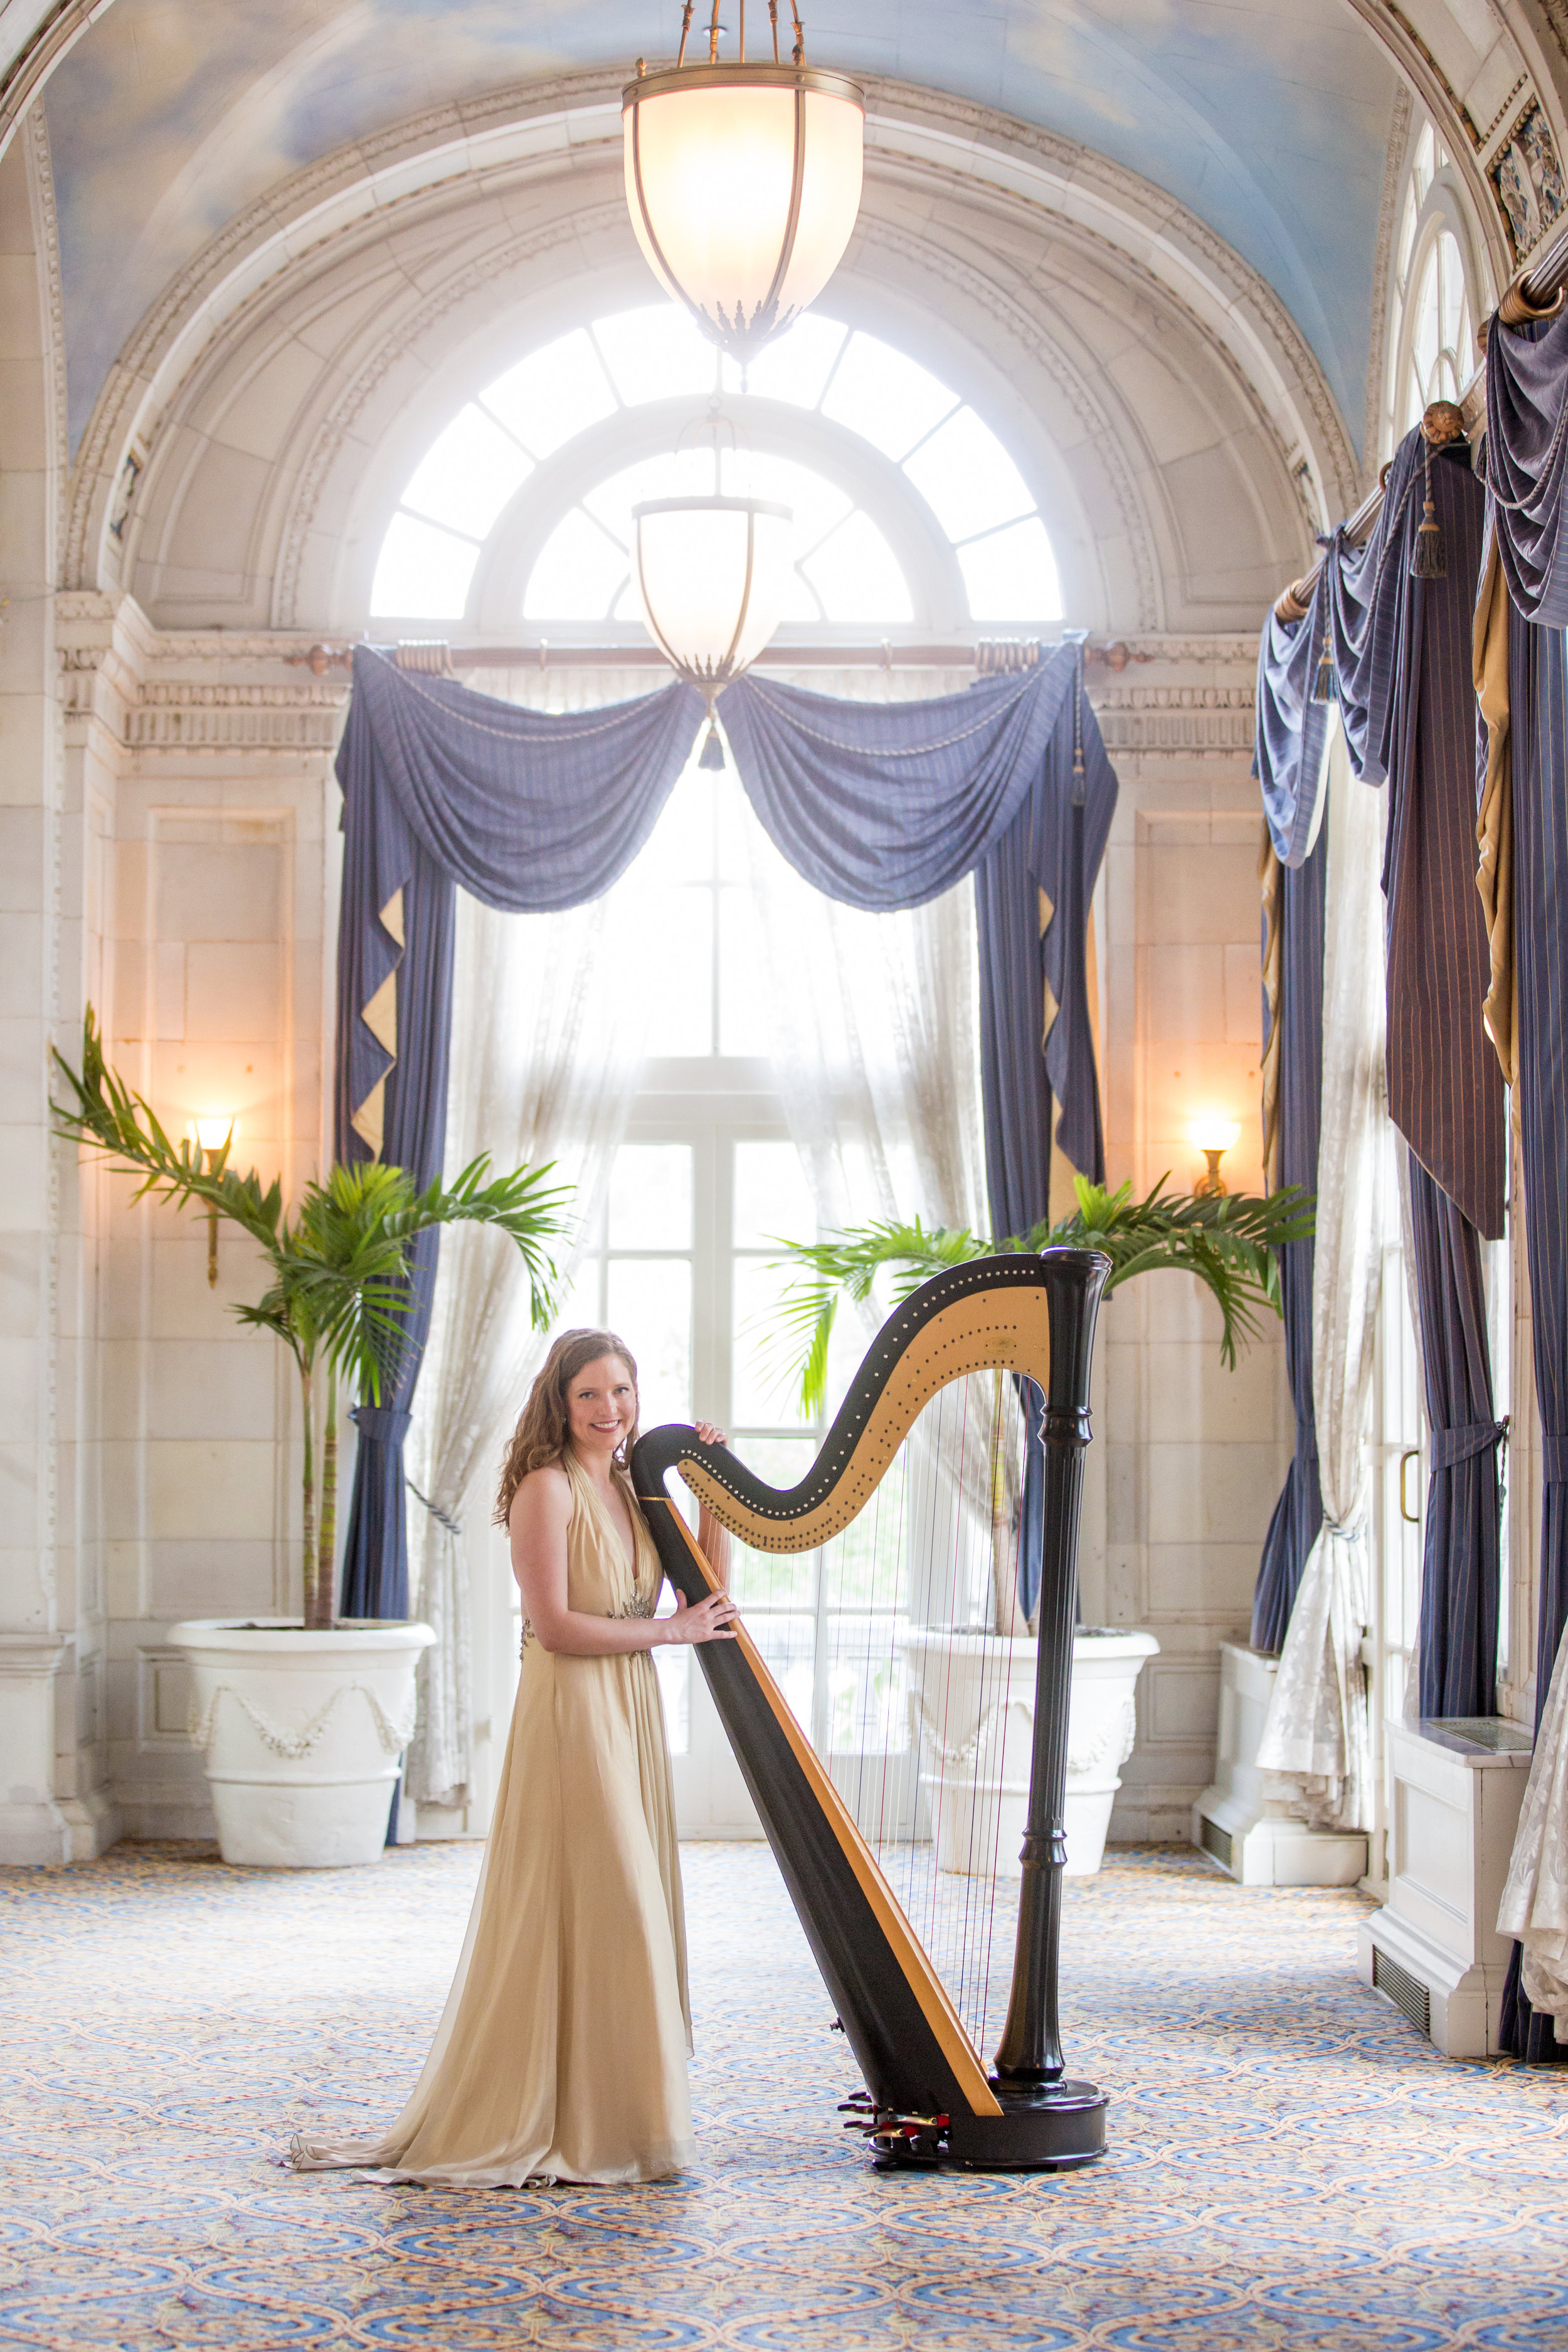 """Imagine…. - The huge smile on your mother's or wife's face as it is lit up by birthday candles and the sound of """"Happy Birthday"""" on the harp."""